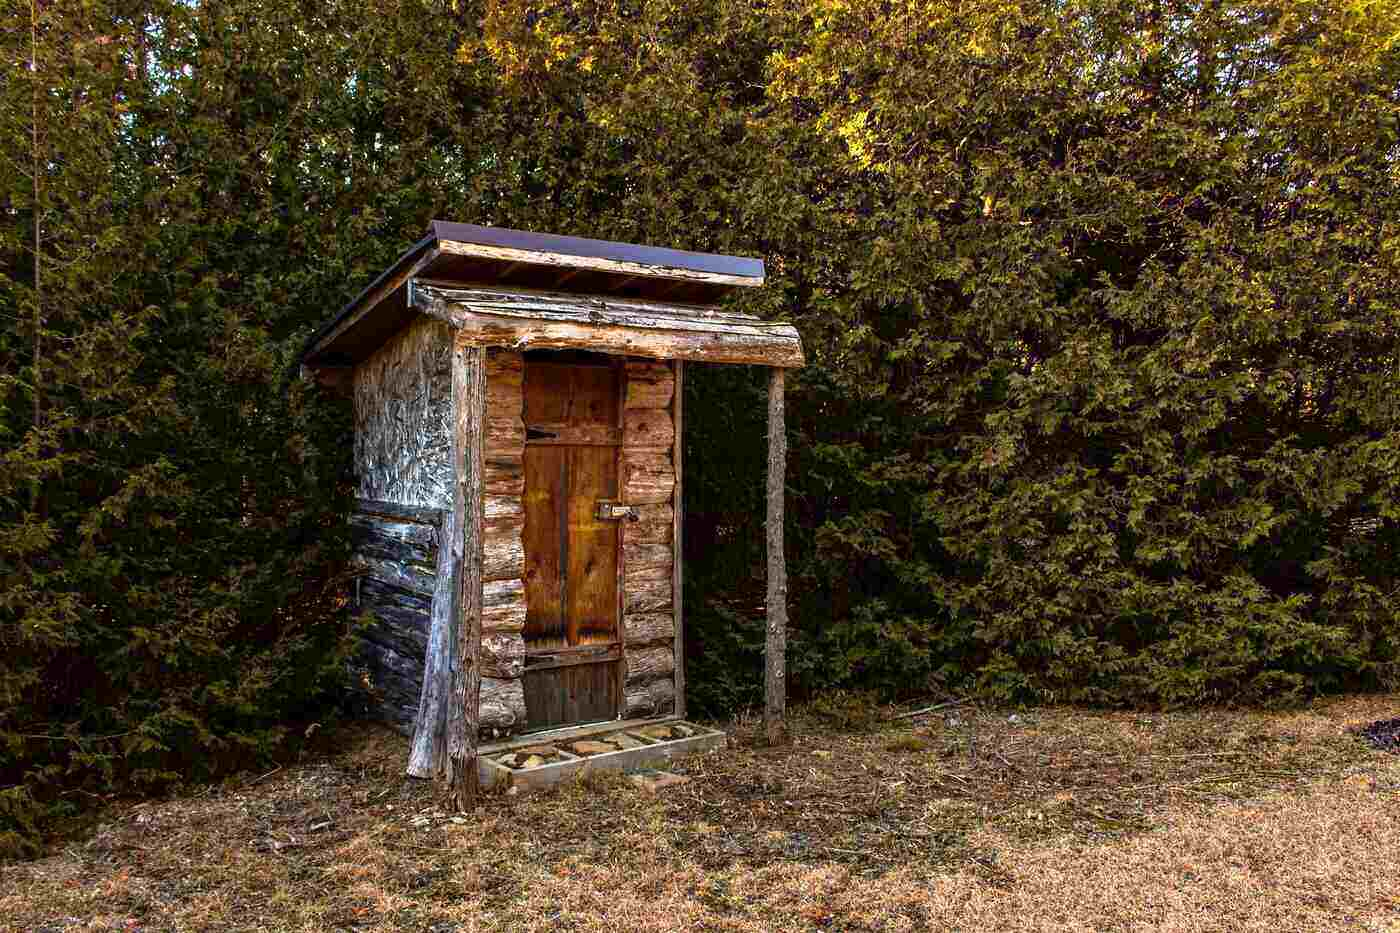 wooden outhouse by cedar trees - how to build a diy composting toilet